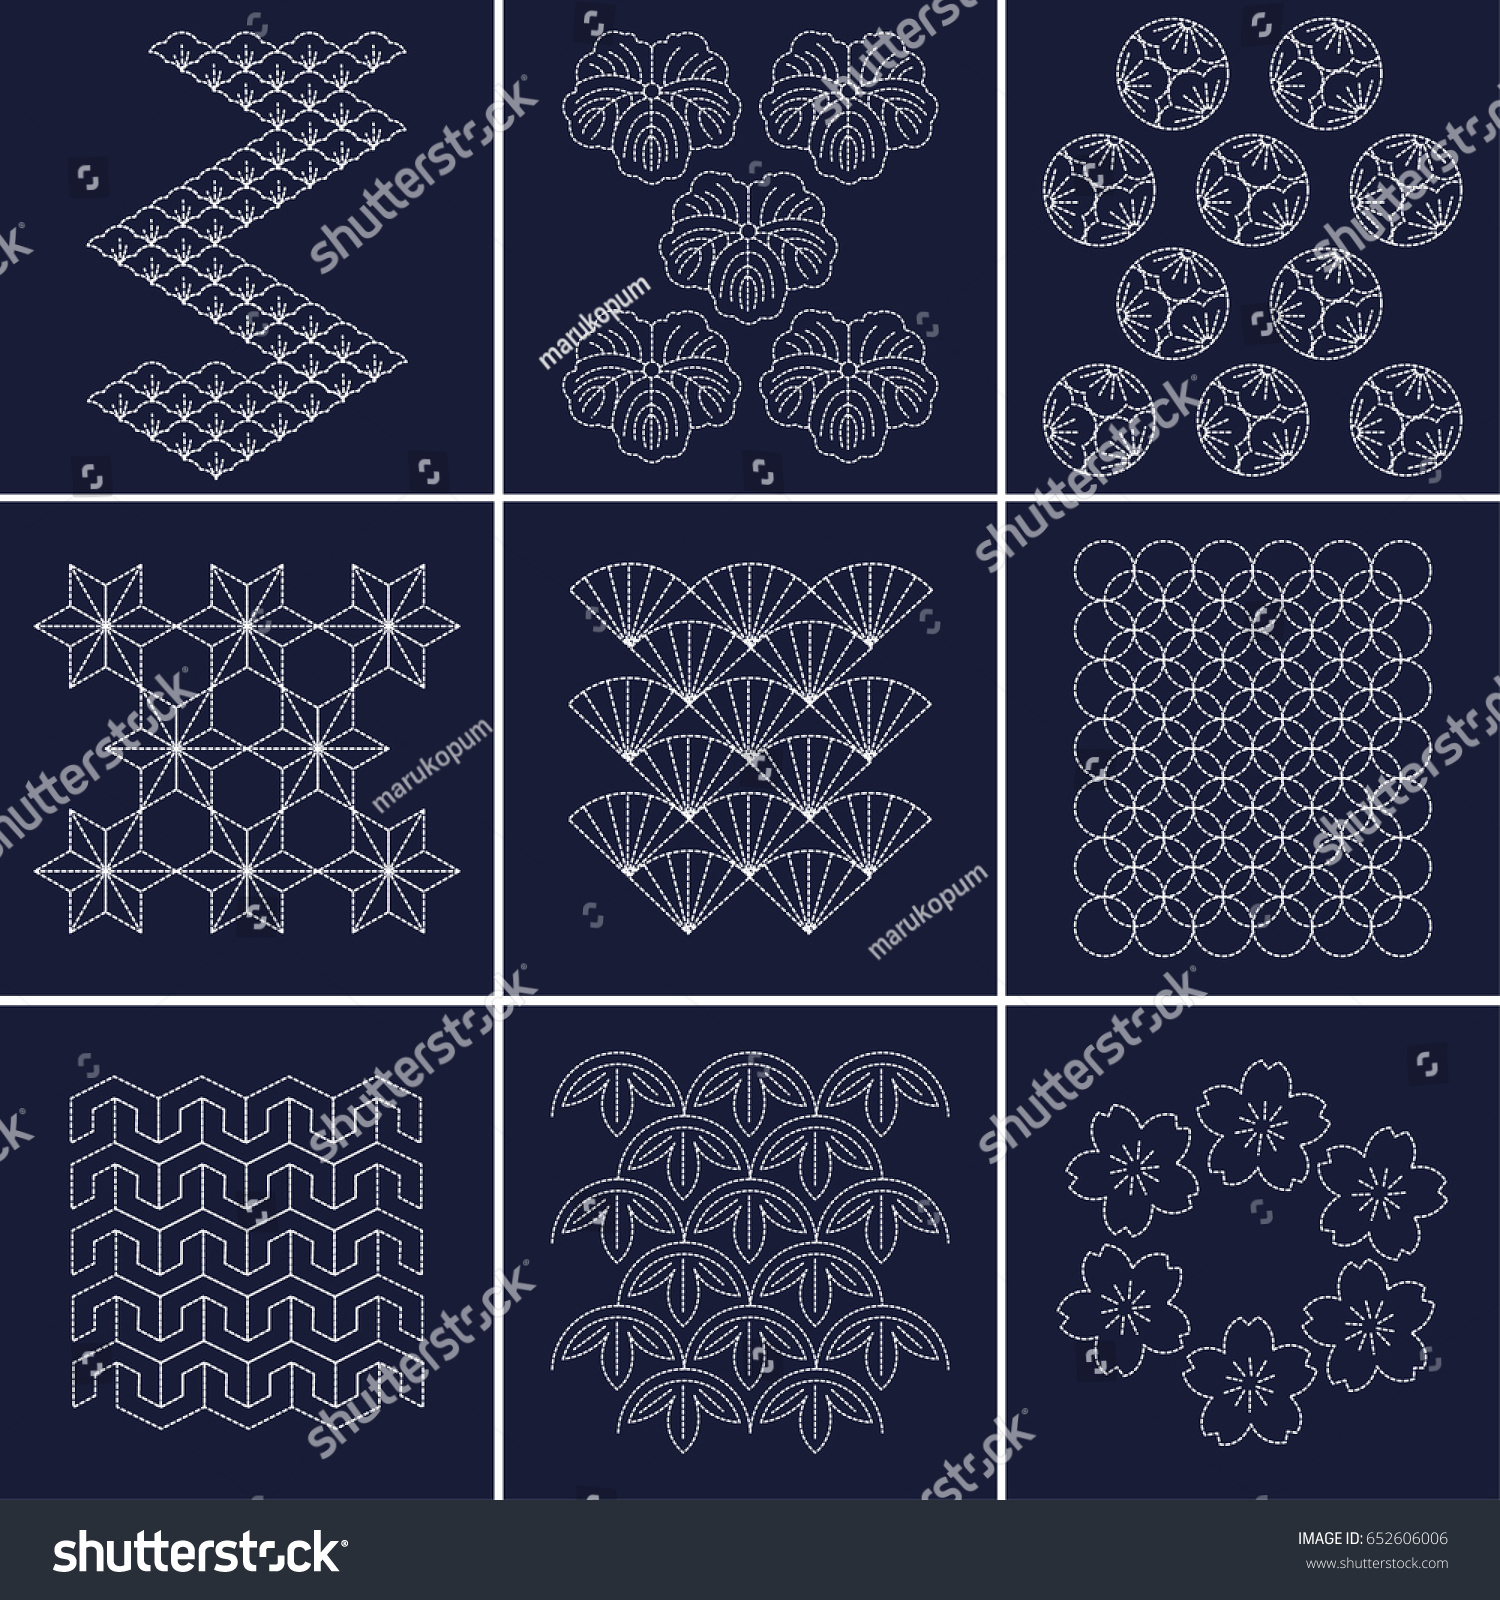 Sashiko Patterns Best Inspiration